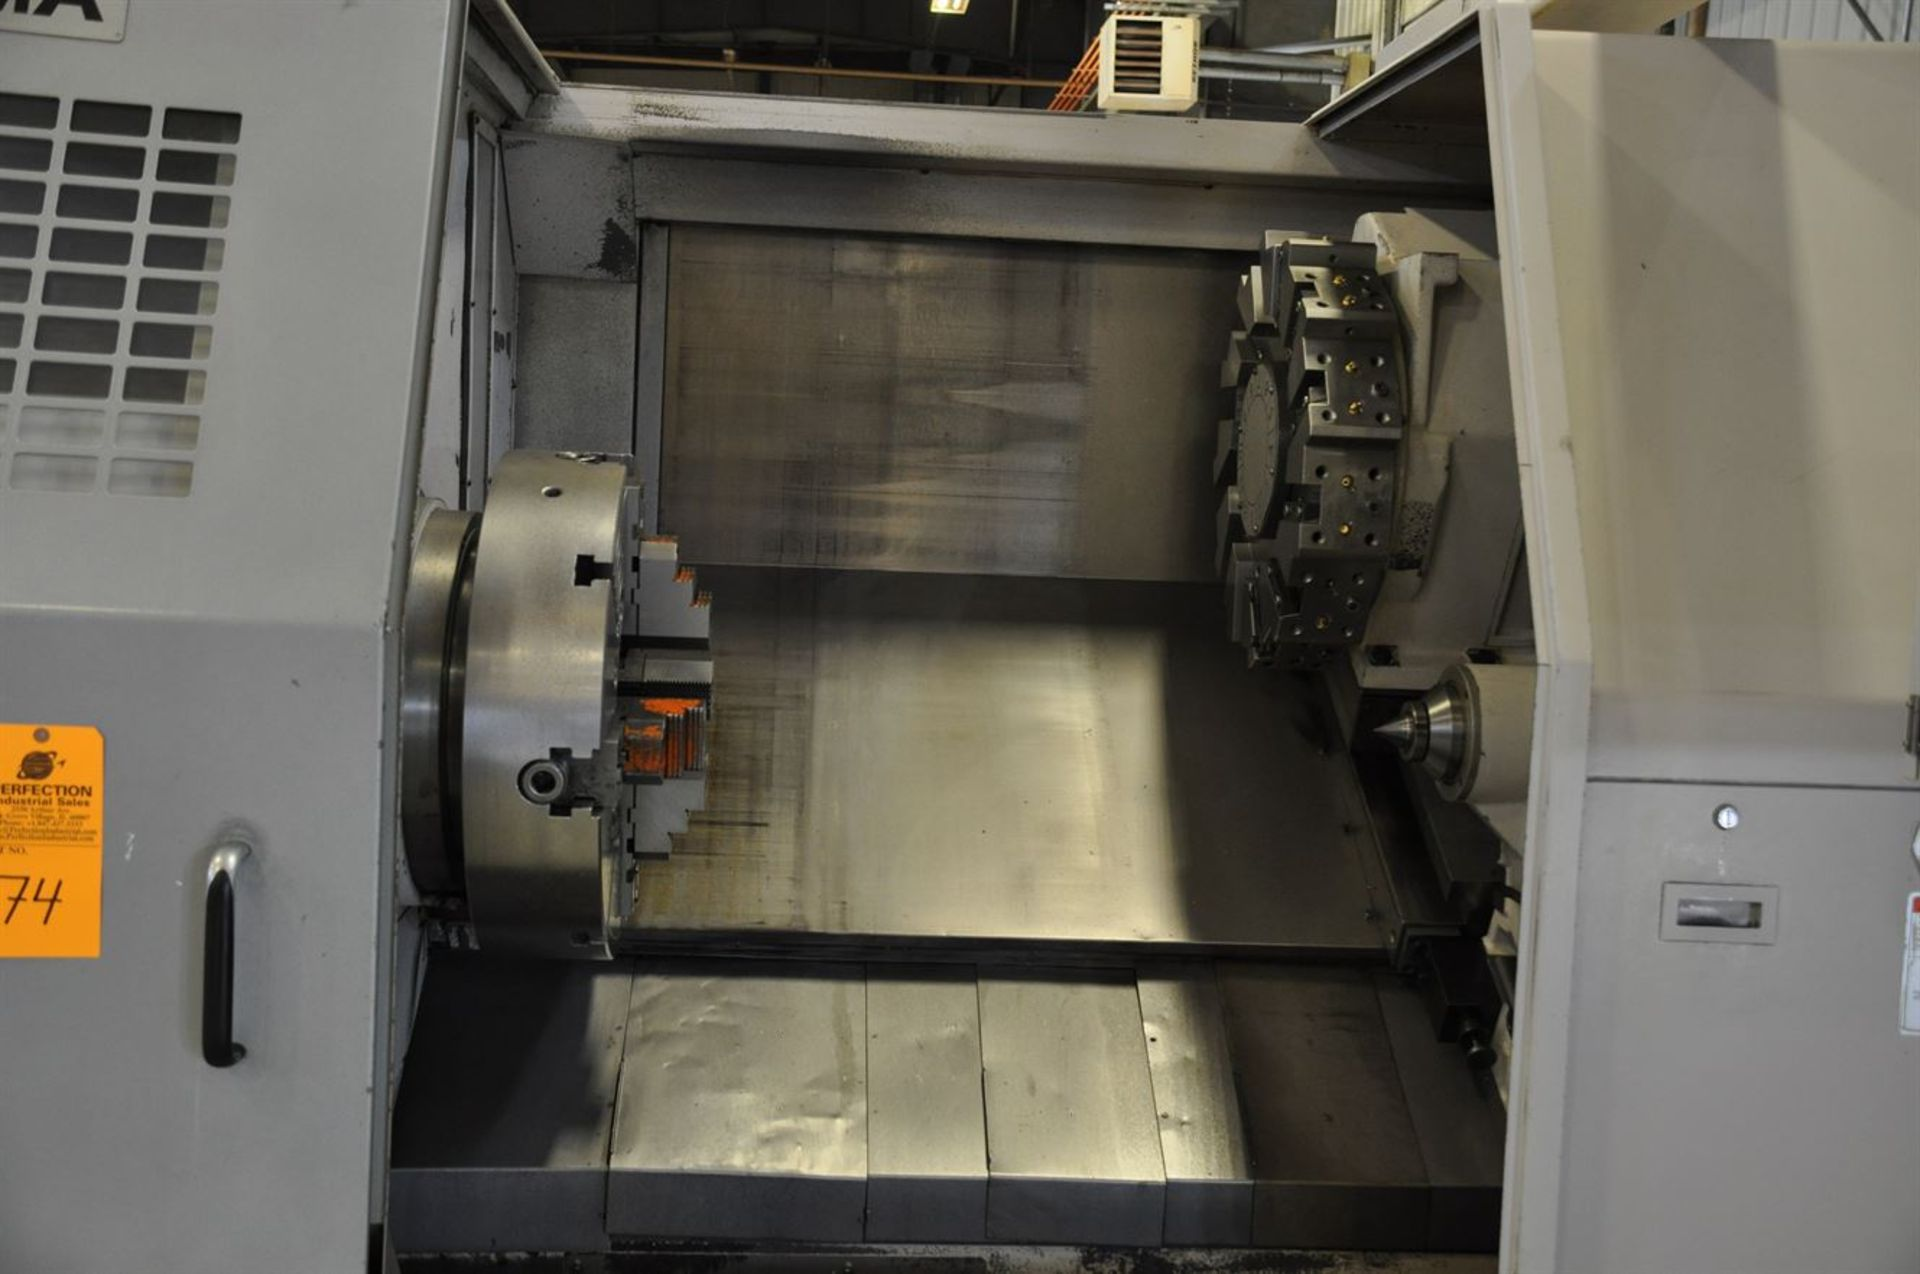 "2012 OKUMA LB35 II Turning Centers, s/n 166500 w/ OSP-P200L Control, 7"" Bore, SCHUNK 600 mm 4 Jaw - Image 3 of 10"